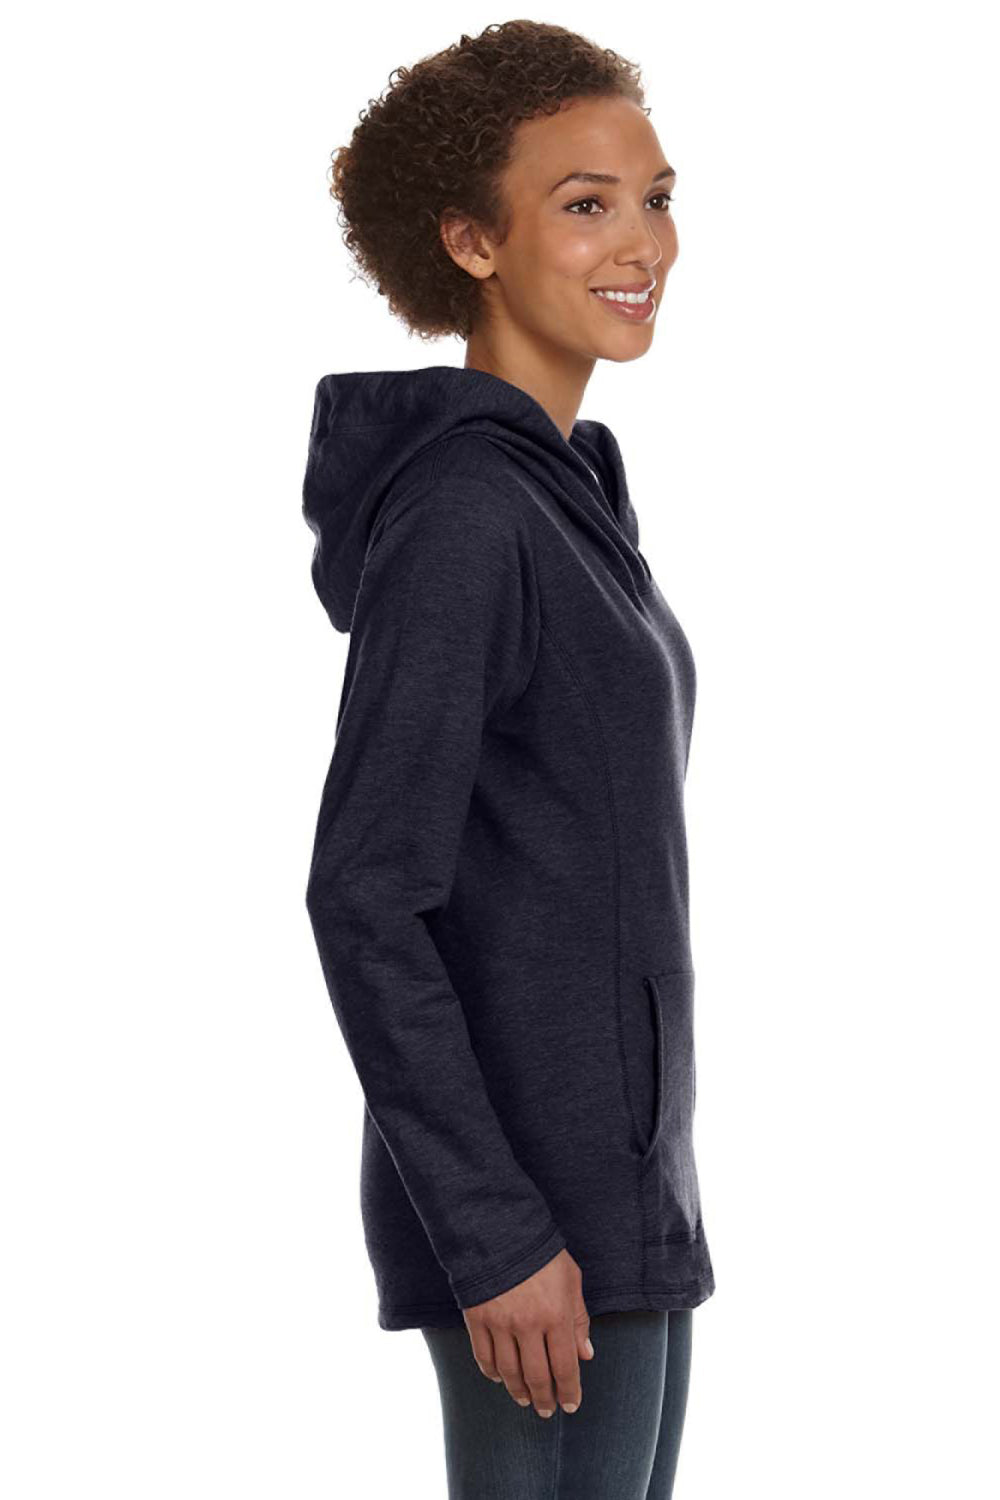 Anvil 72500L Womens French Terry Hooded Sweatshirt Hoodie Navy Blue Side